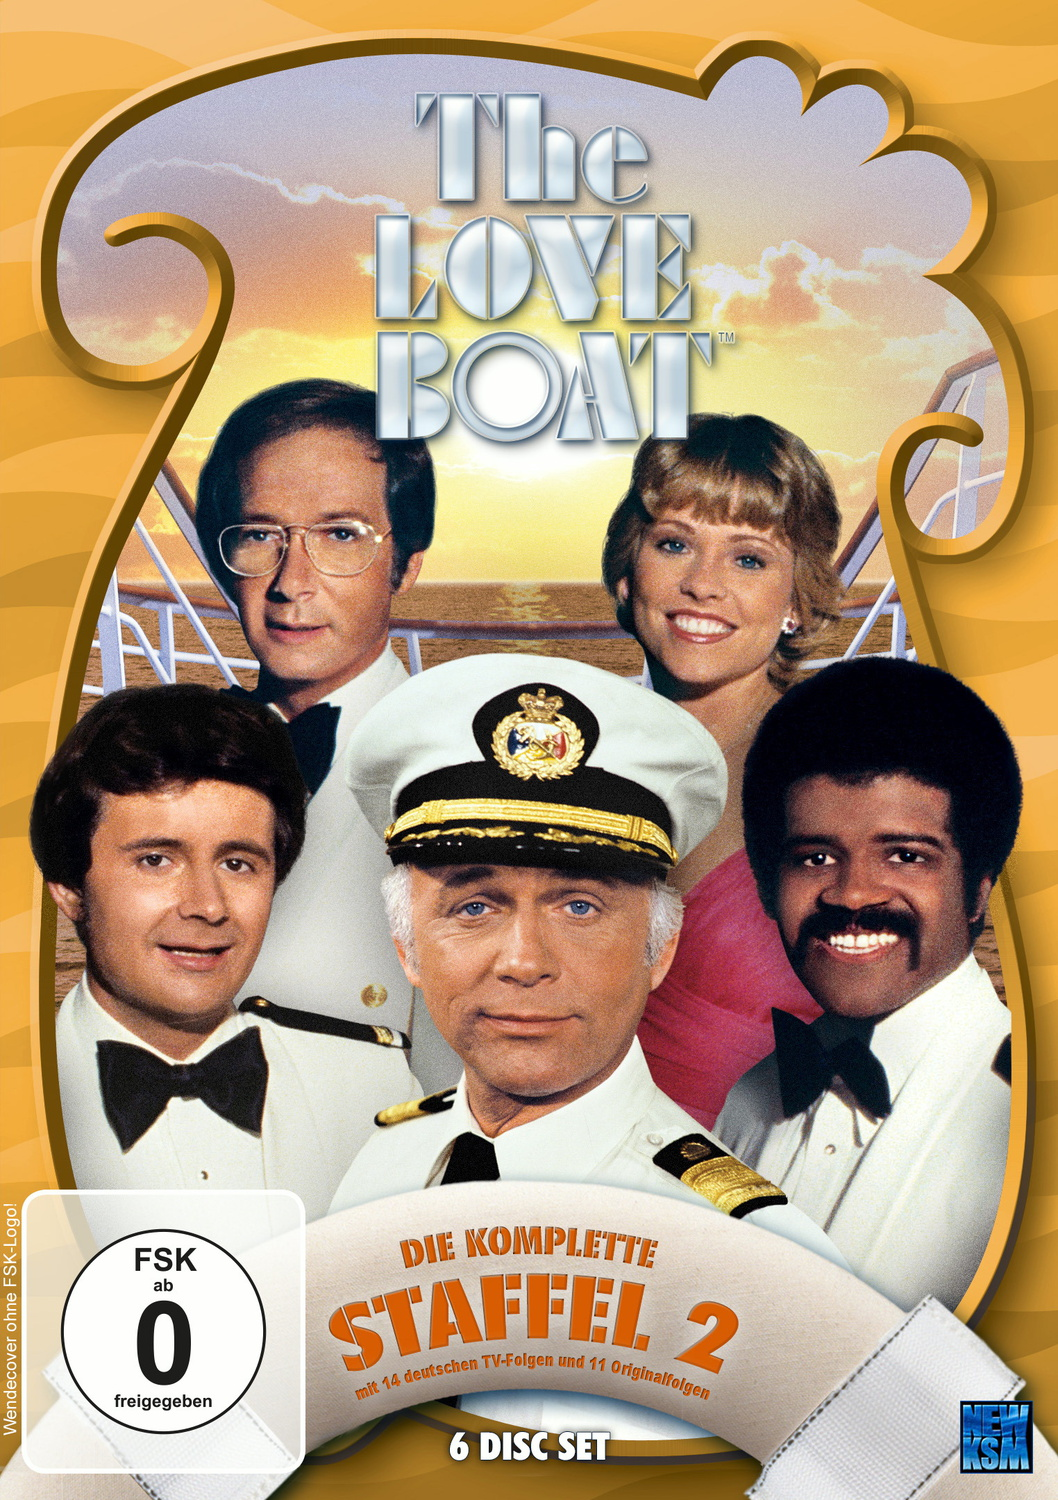 The Love Boat - Die komplette Staffel 2 [6 DVDs]